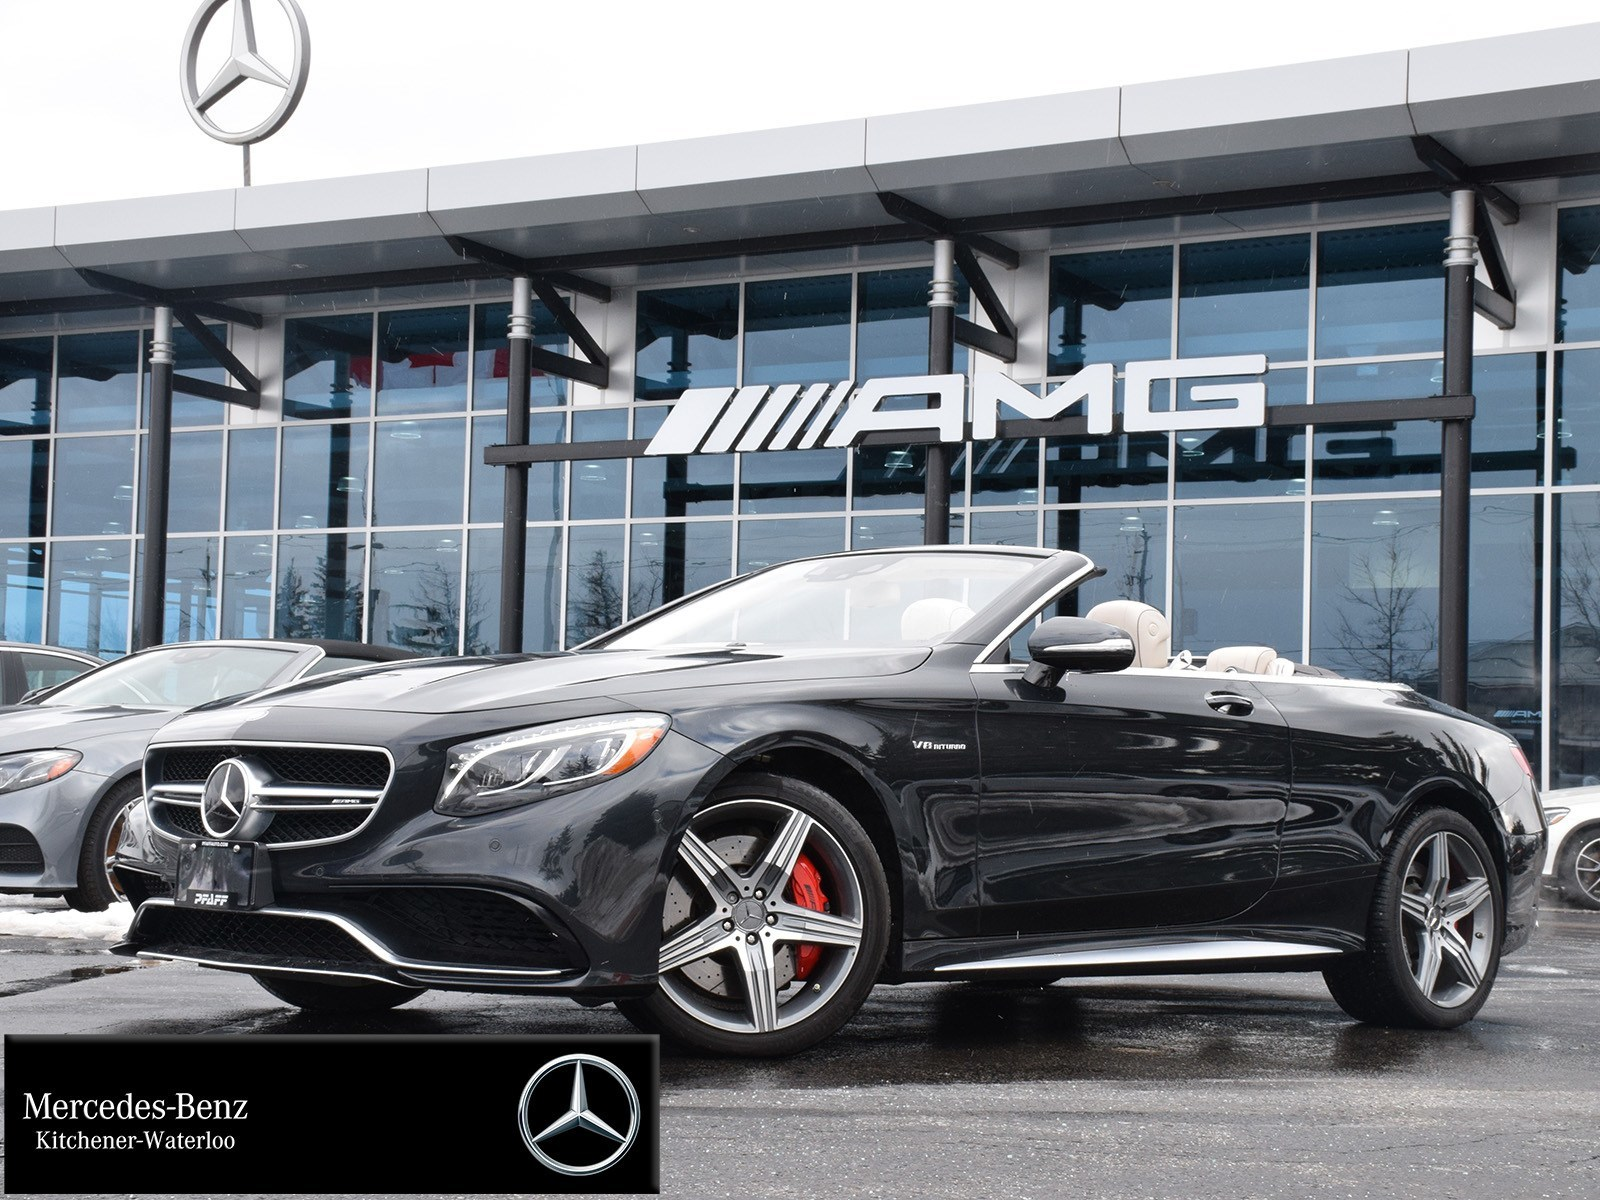 Certified Pre-Owned 2017 Mercedes-Benz S63 AMG 4MATIC Cabriolet